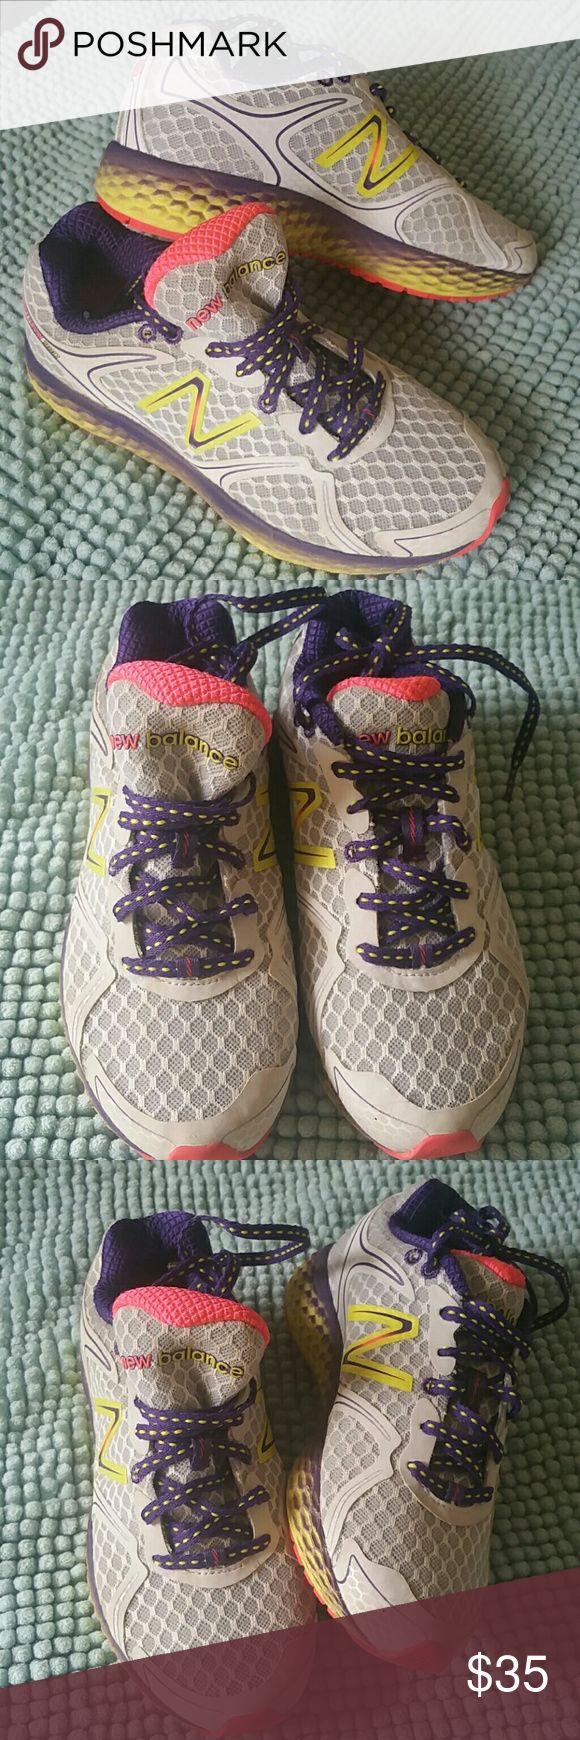 PRICE DROP! NEW BALANCE RUNNING SNEAKERS BIG GIRLS New Balance Fresh Foam 980 Shoes Running Athletic Sneakers size 5.In Excellent condition. From a clean, pet and smoke free home. No shoe box. New Balance Shoes Sneakers